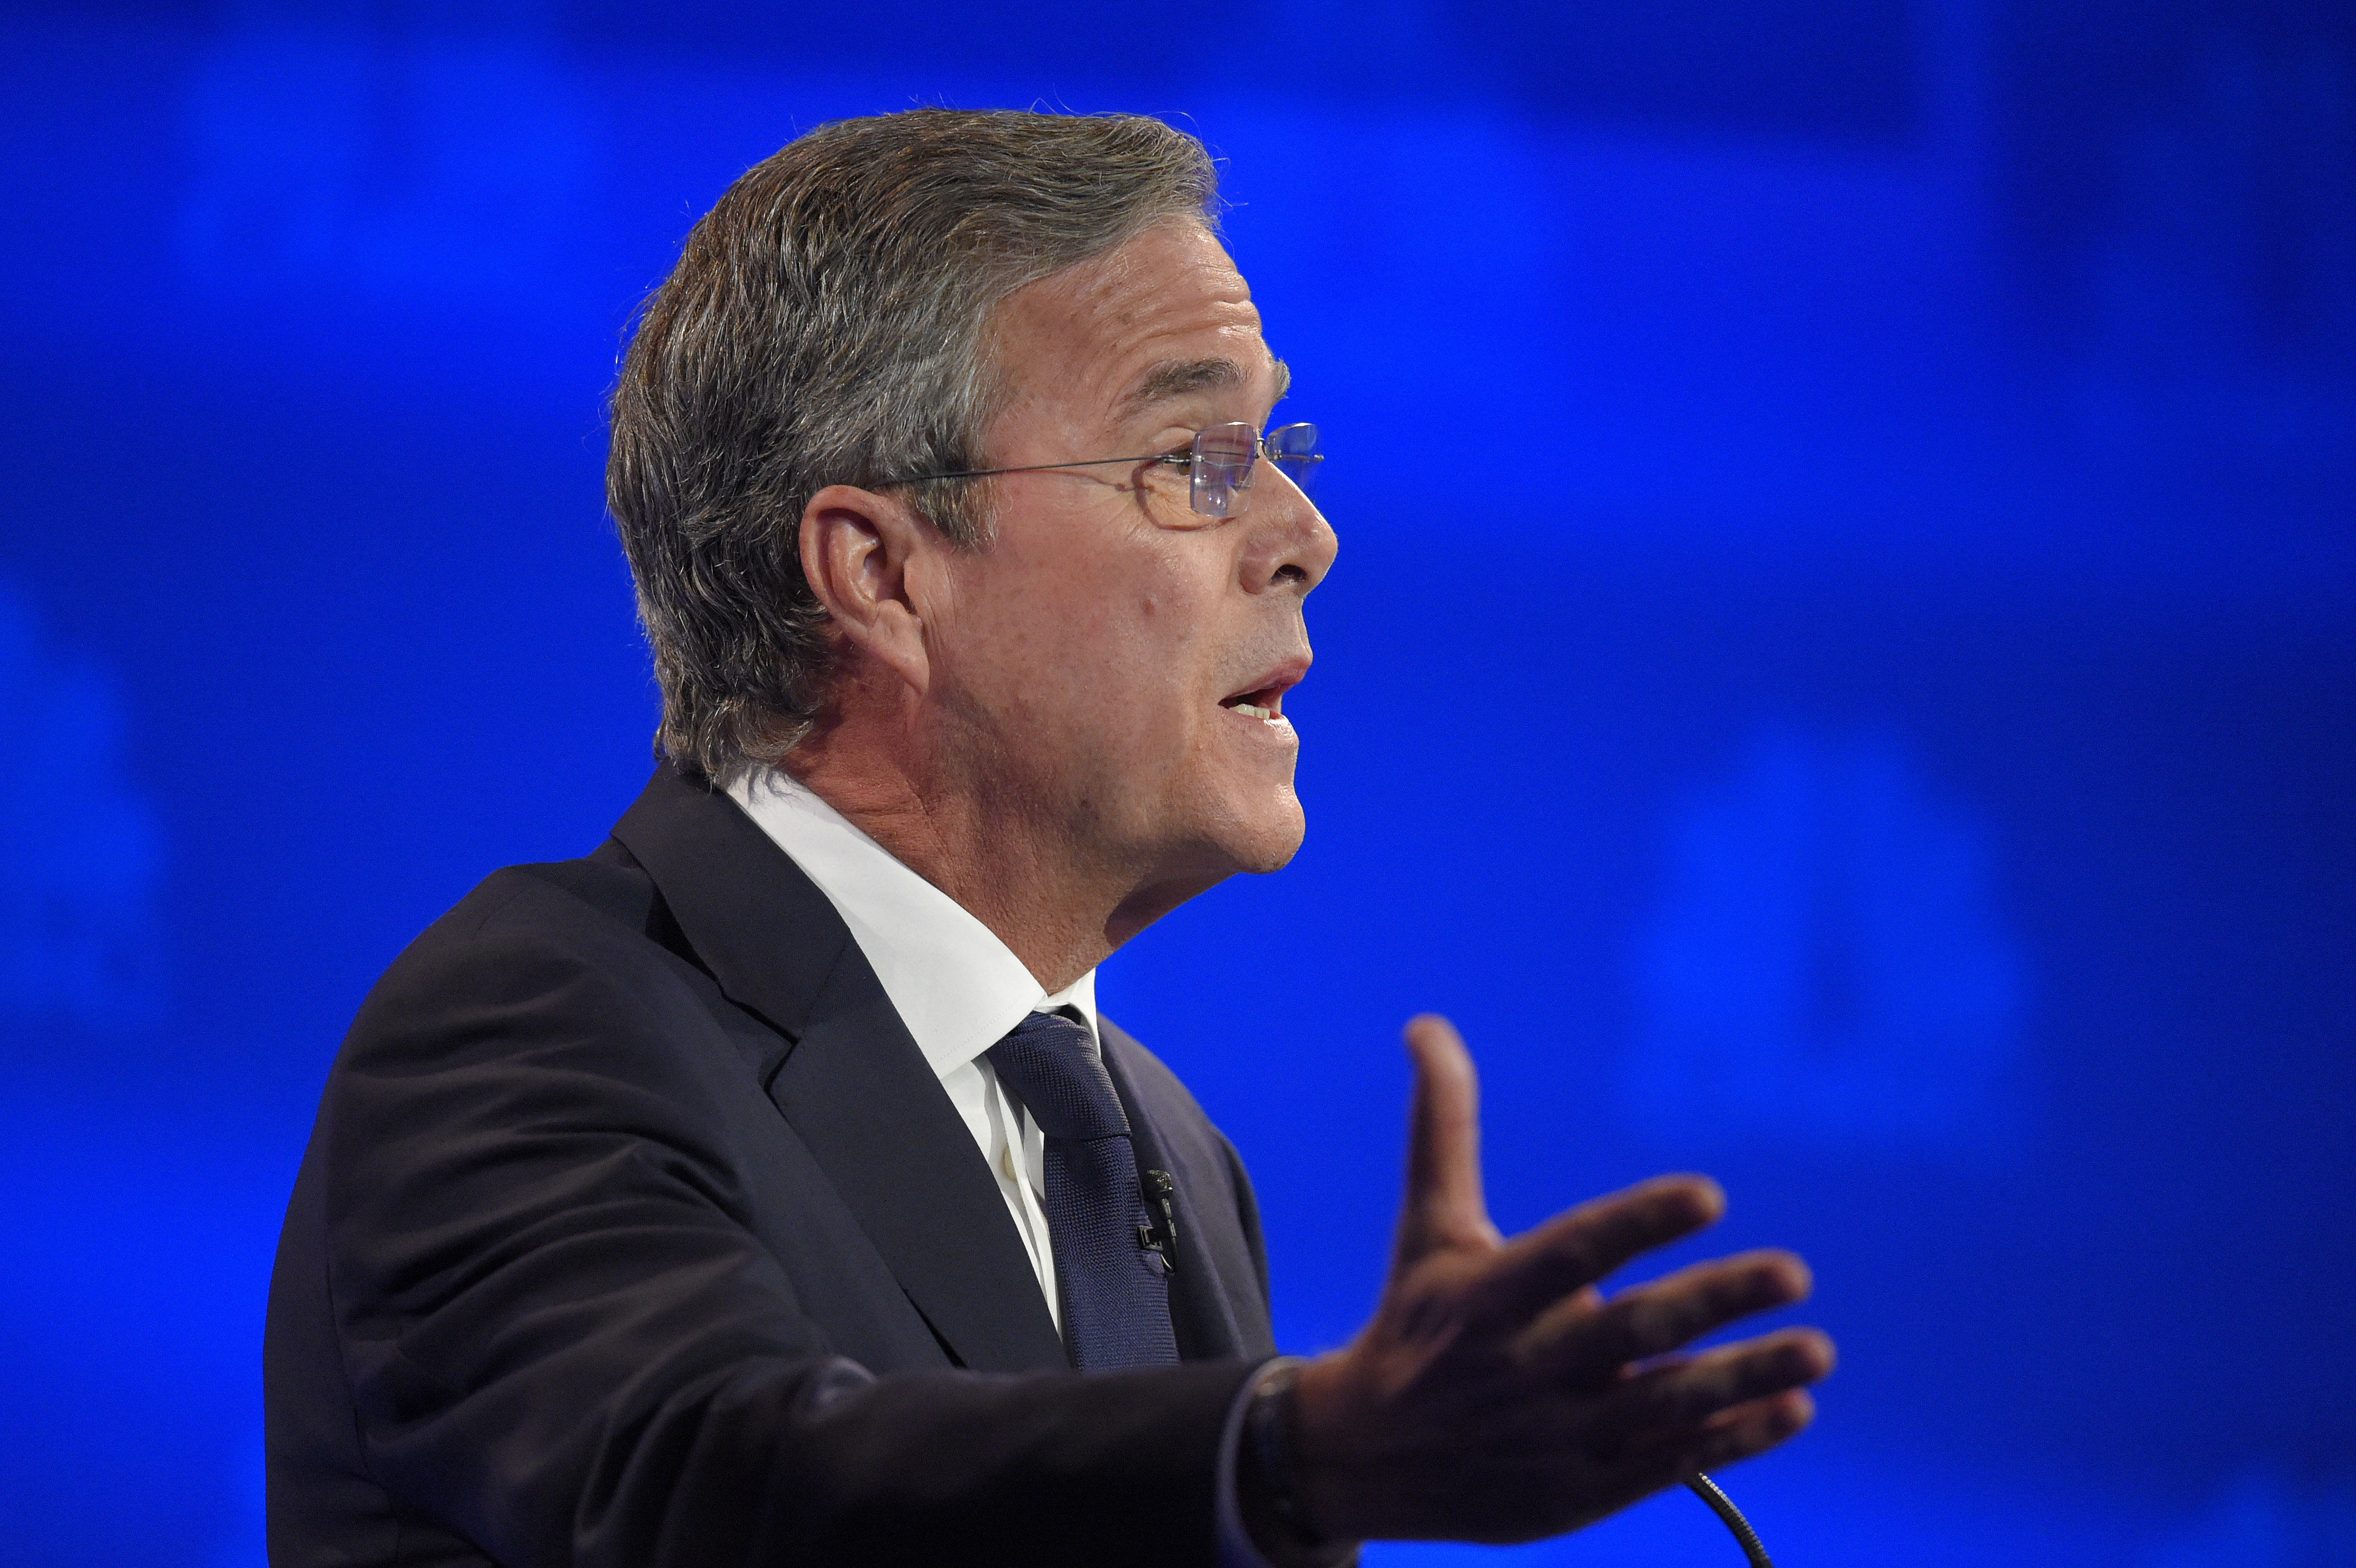 Jeb Bush speaks during the CNBC Republican presidential debate at the University of Colorado, Oct. 28, 2015, in Boulder, Colo.